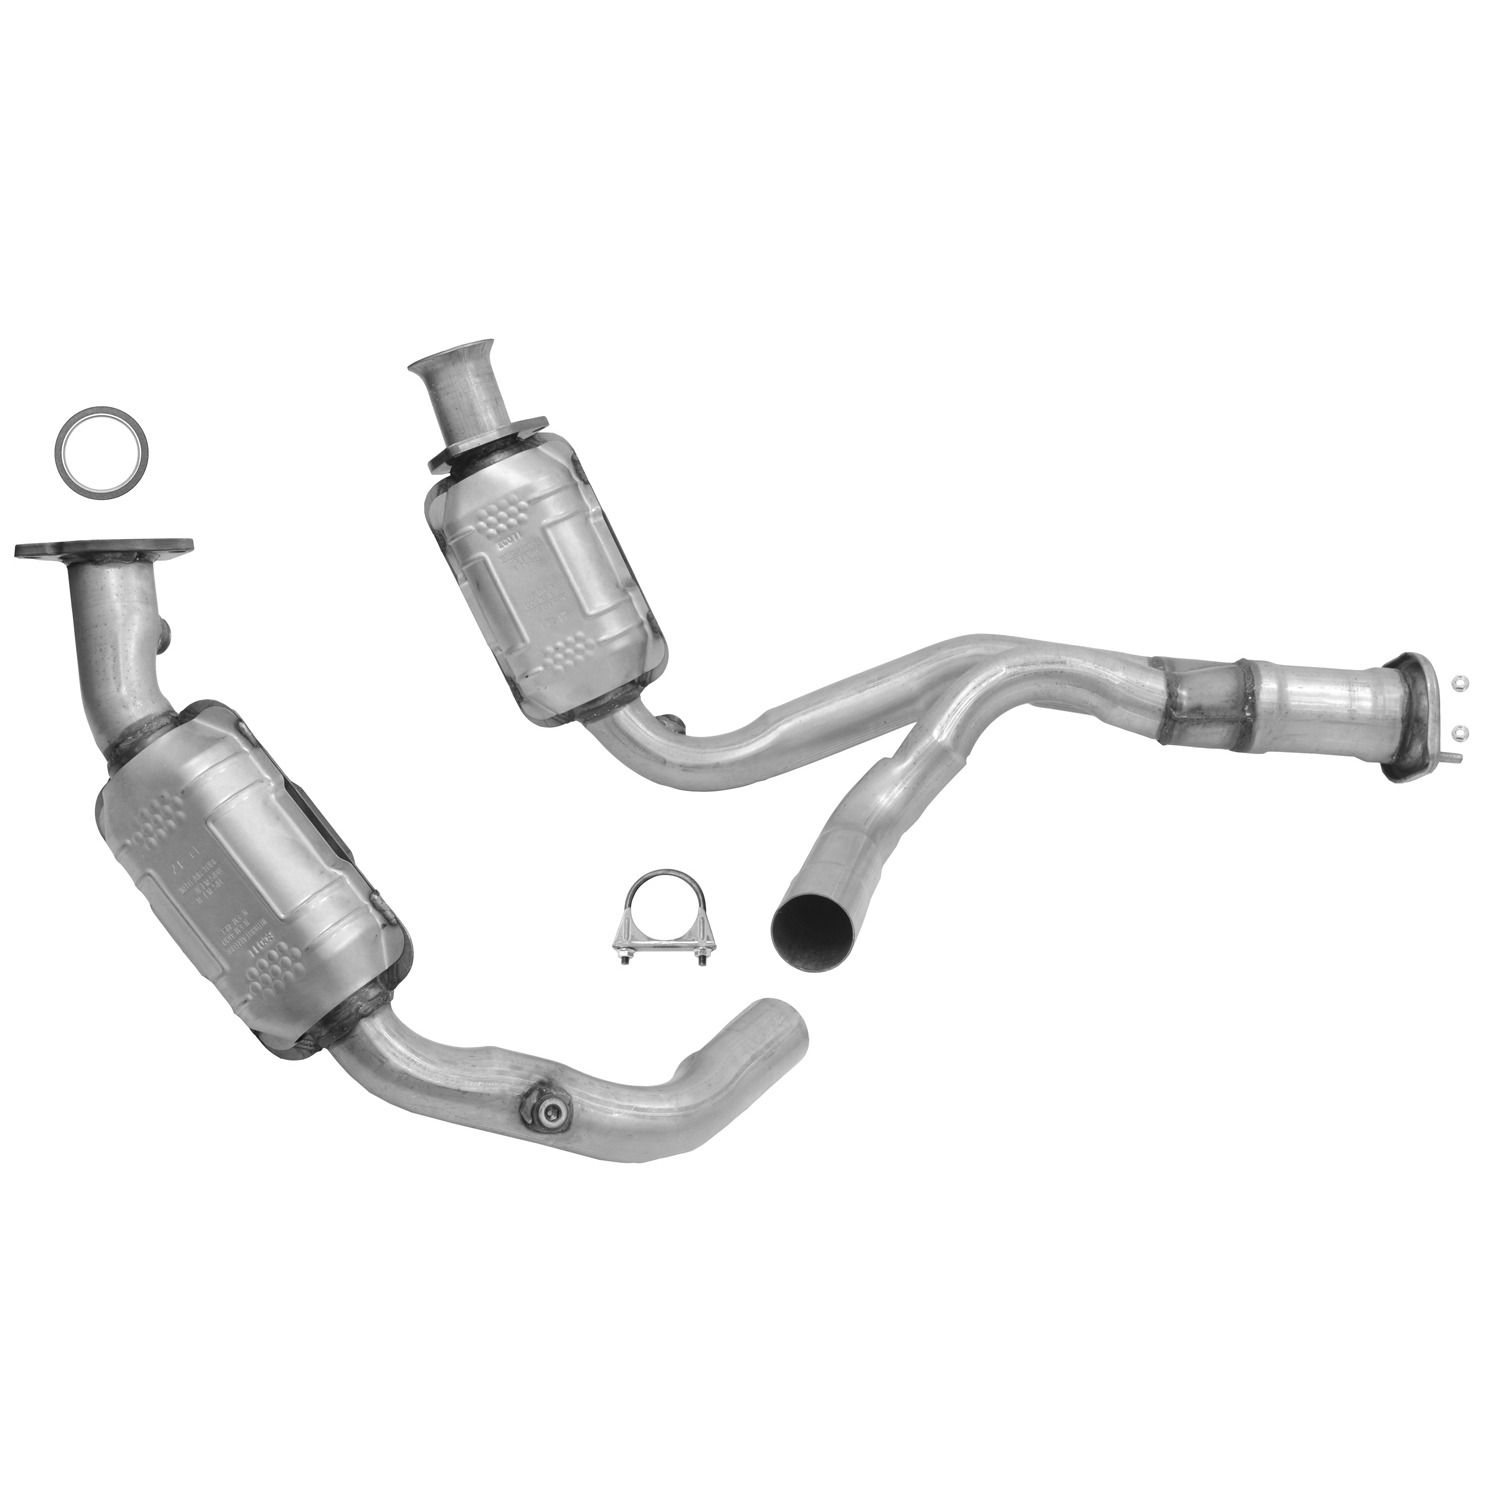 2006 GMC Sierra 1500 Catalytic Converter 8 Cyl 53l Eastern 50372 Undercar Classic Model Legal Note Not For Sale Or Use In The State Of: 2006 GMC Sierra 1500 Catalytic Converter At Woreks.co